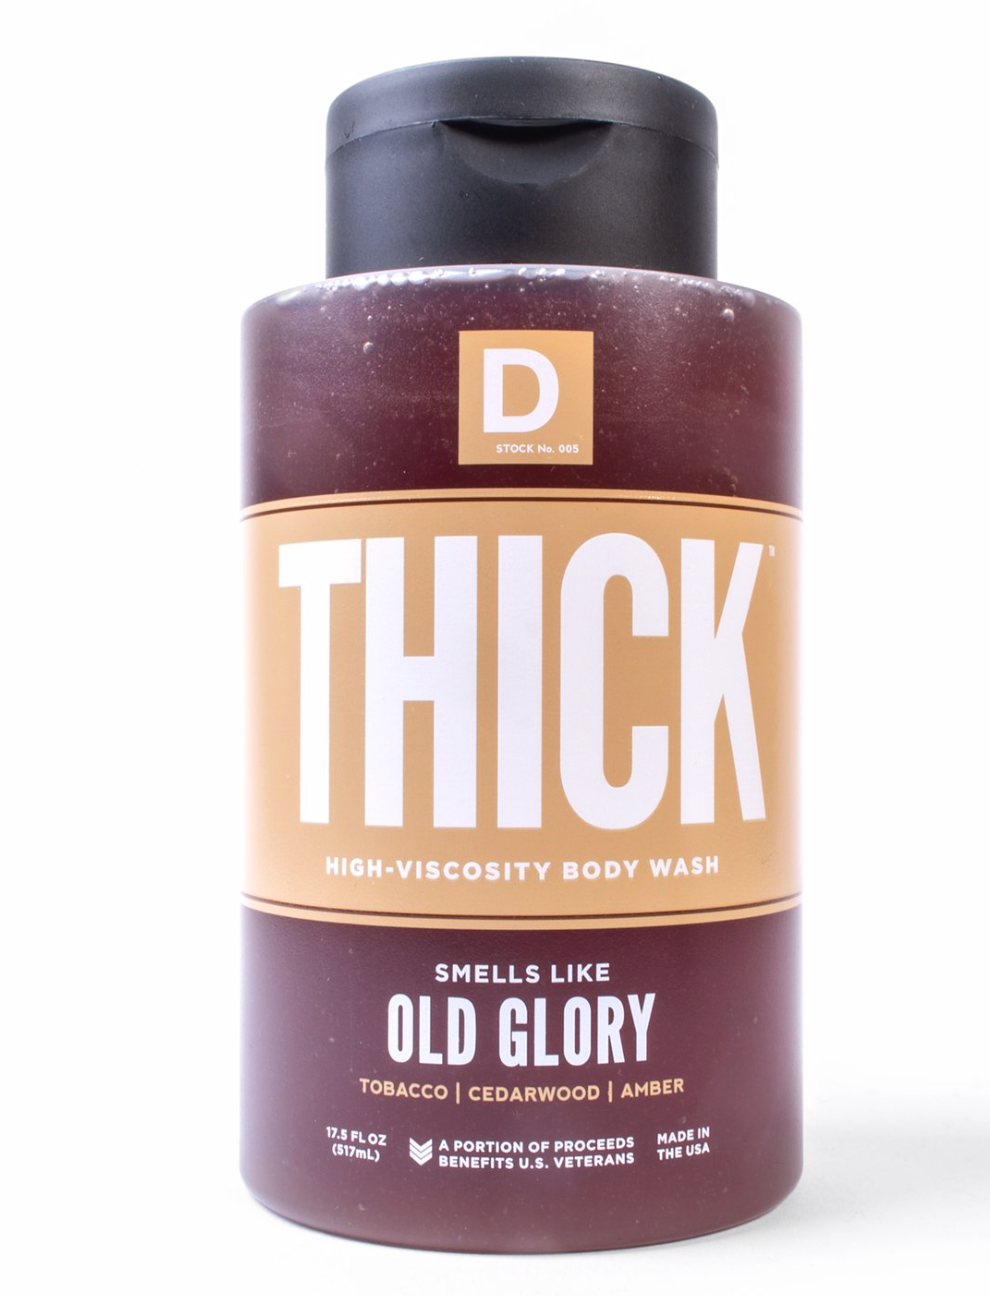 THICK HIGH-VISCOSITY BODY WASH - OLD GLORY